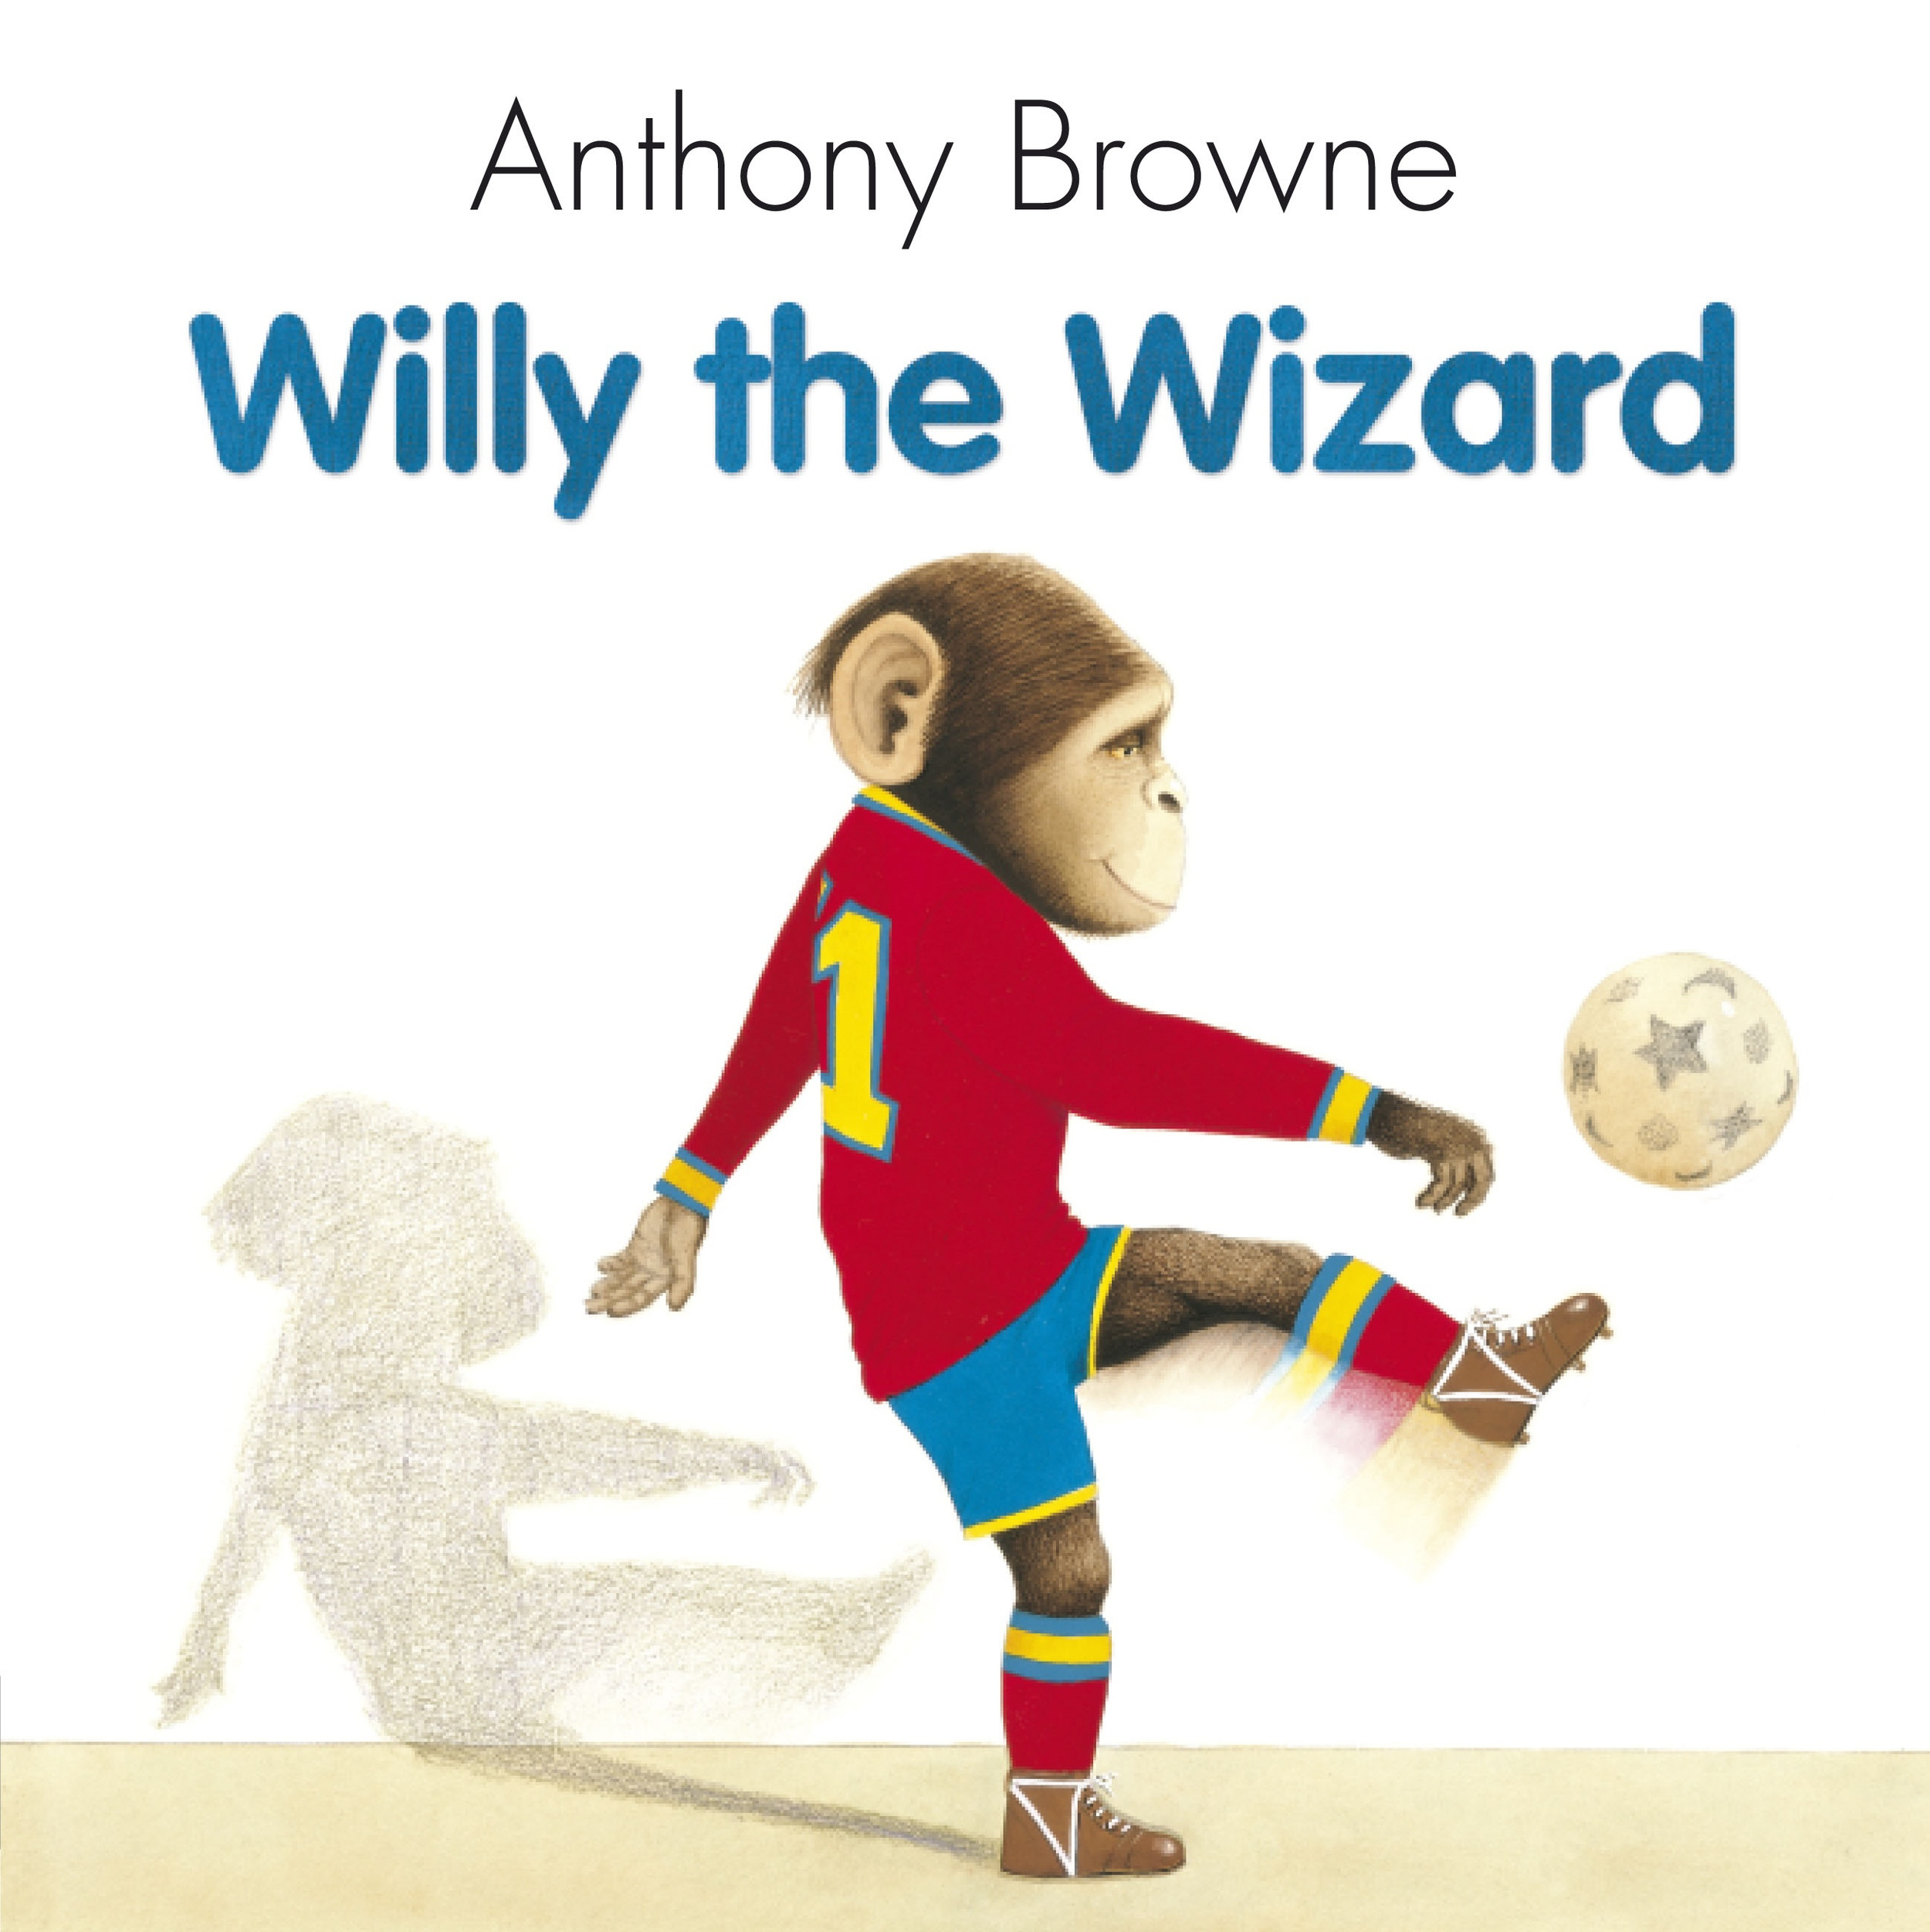 1995  Willy the chimp loves football and dreams of being a star player. But he doesn't have any boots so he's never been picked for the team. Then, one evening, Willy meets a mysterious stranger and his luck begins to change ...